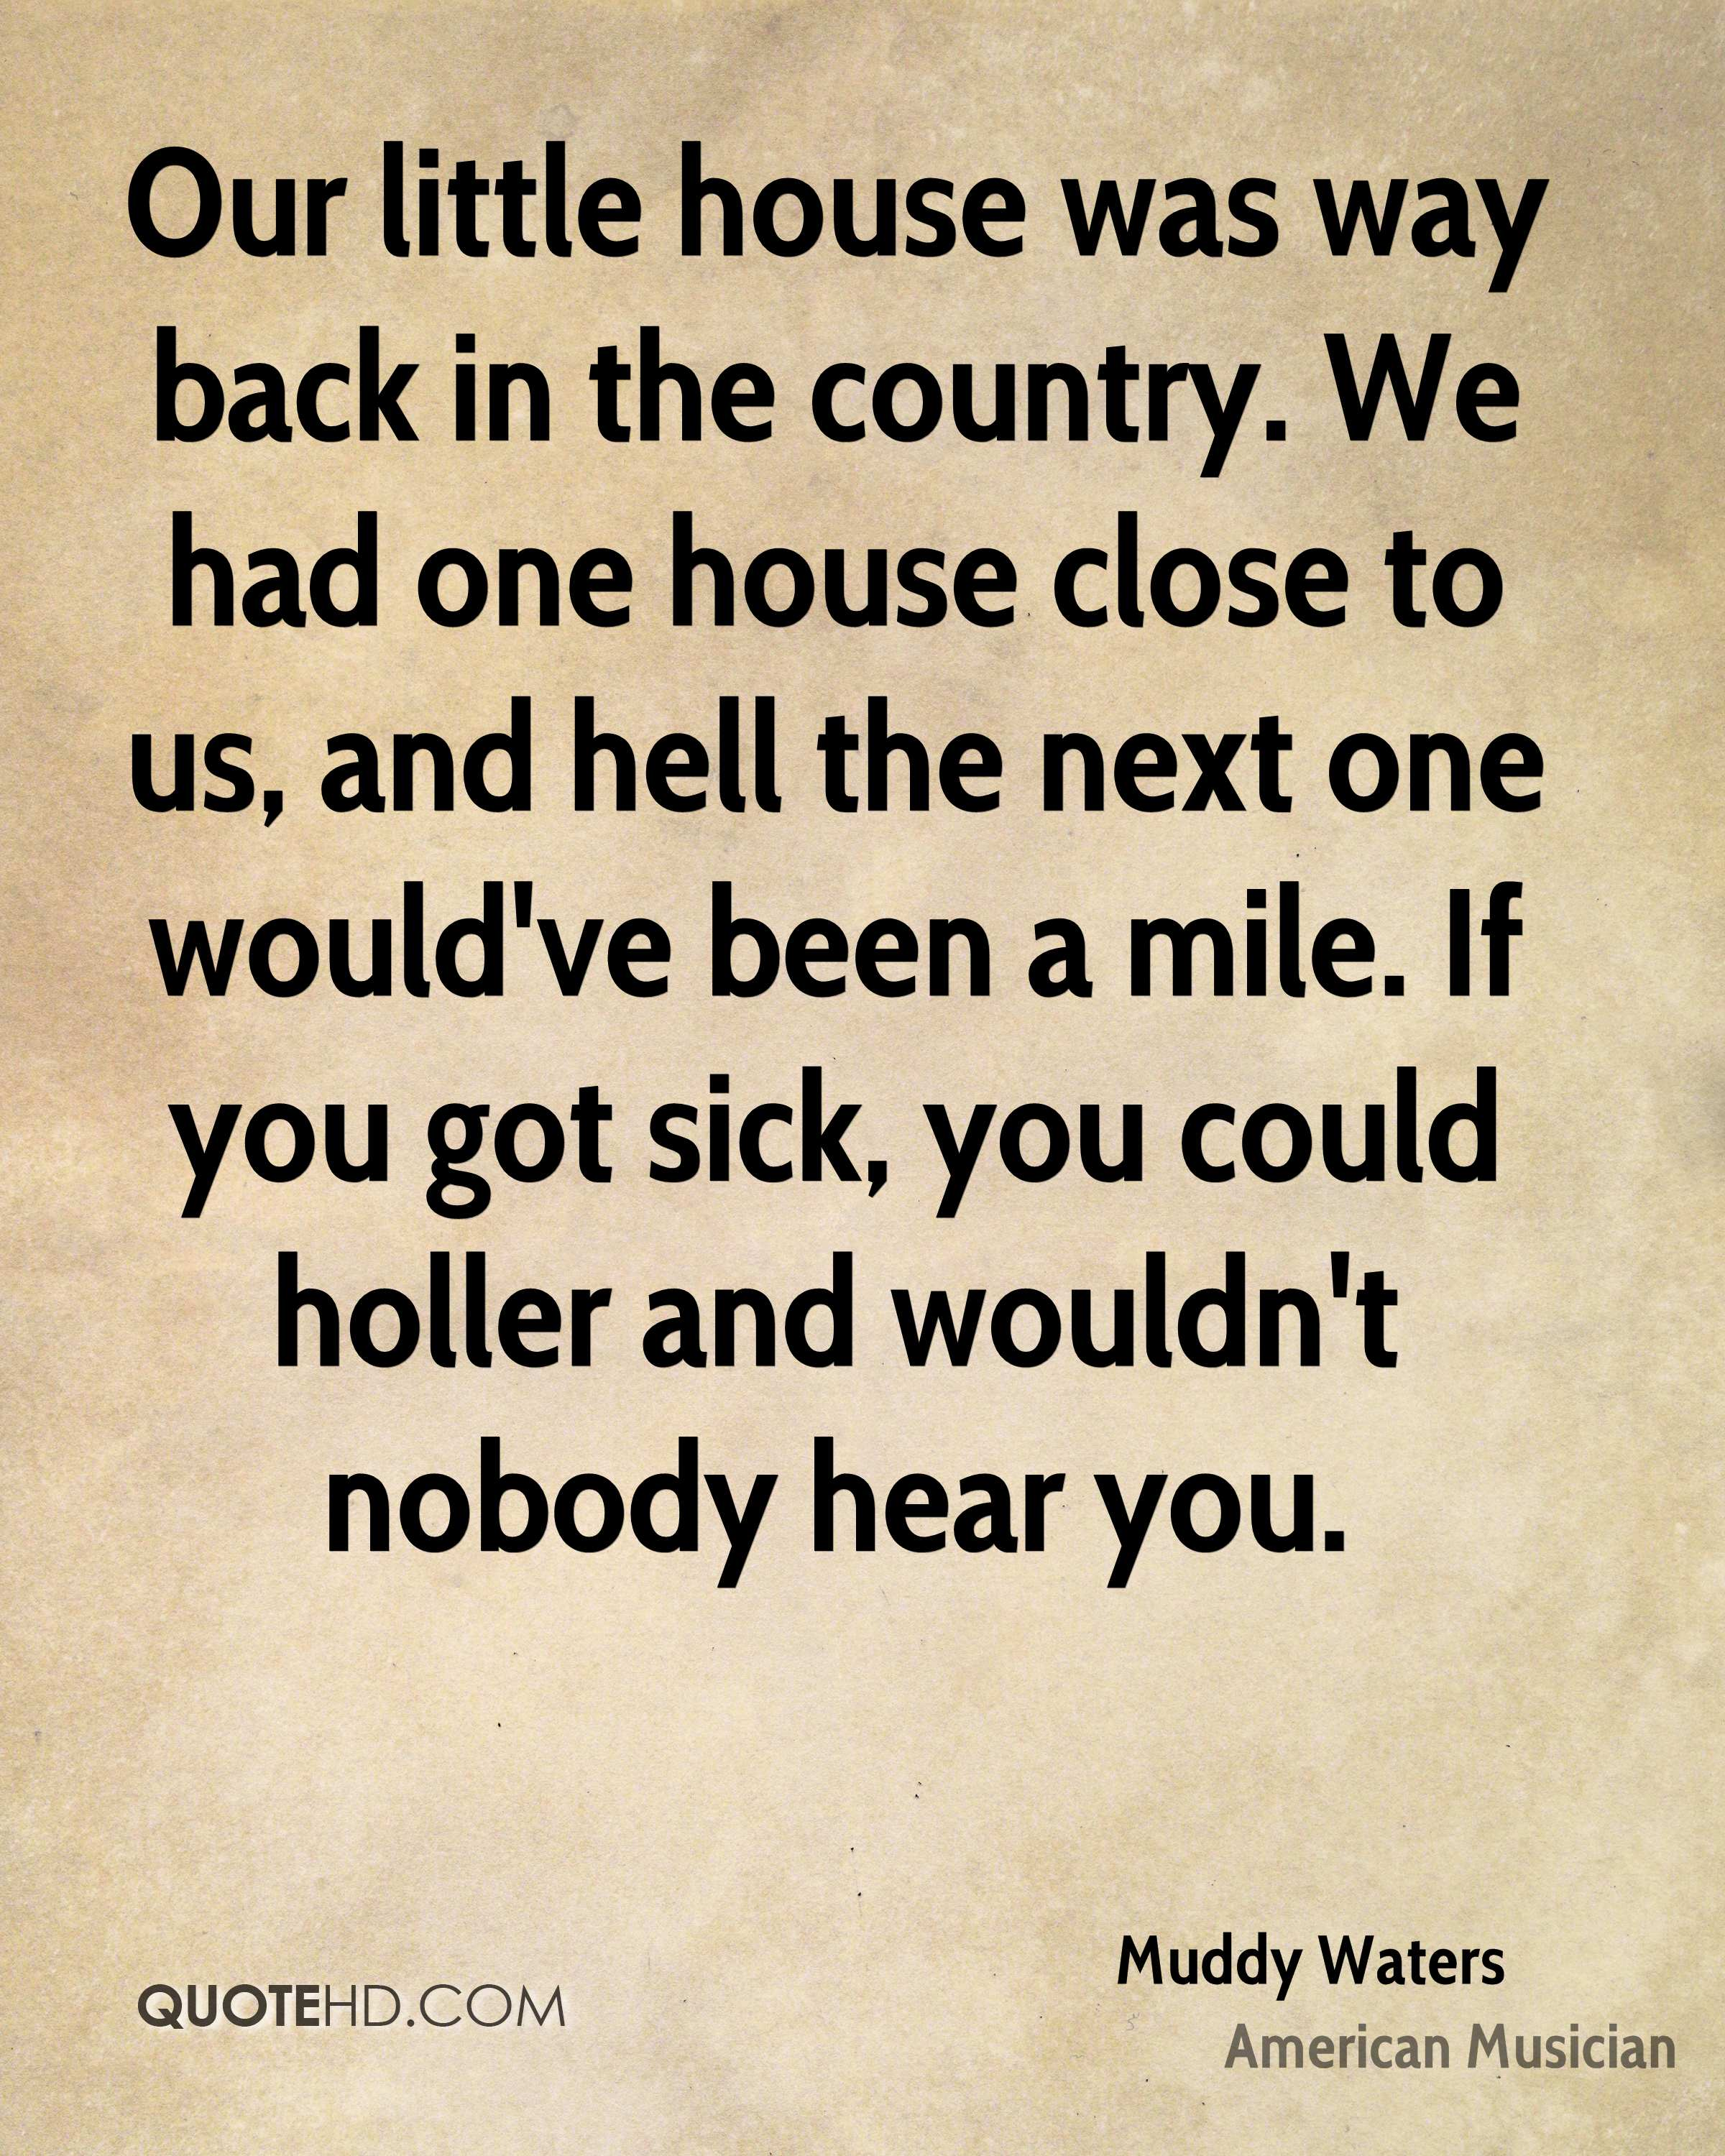 Our little house was way back in the country. We had one house close to us, and hell the next one would've been a mile. If you got sick, you could holler and wouldn't nobody hear you.